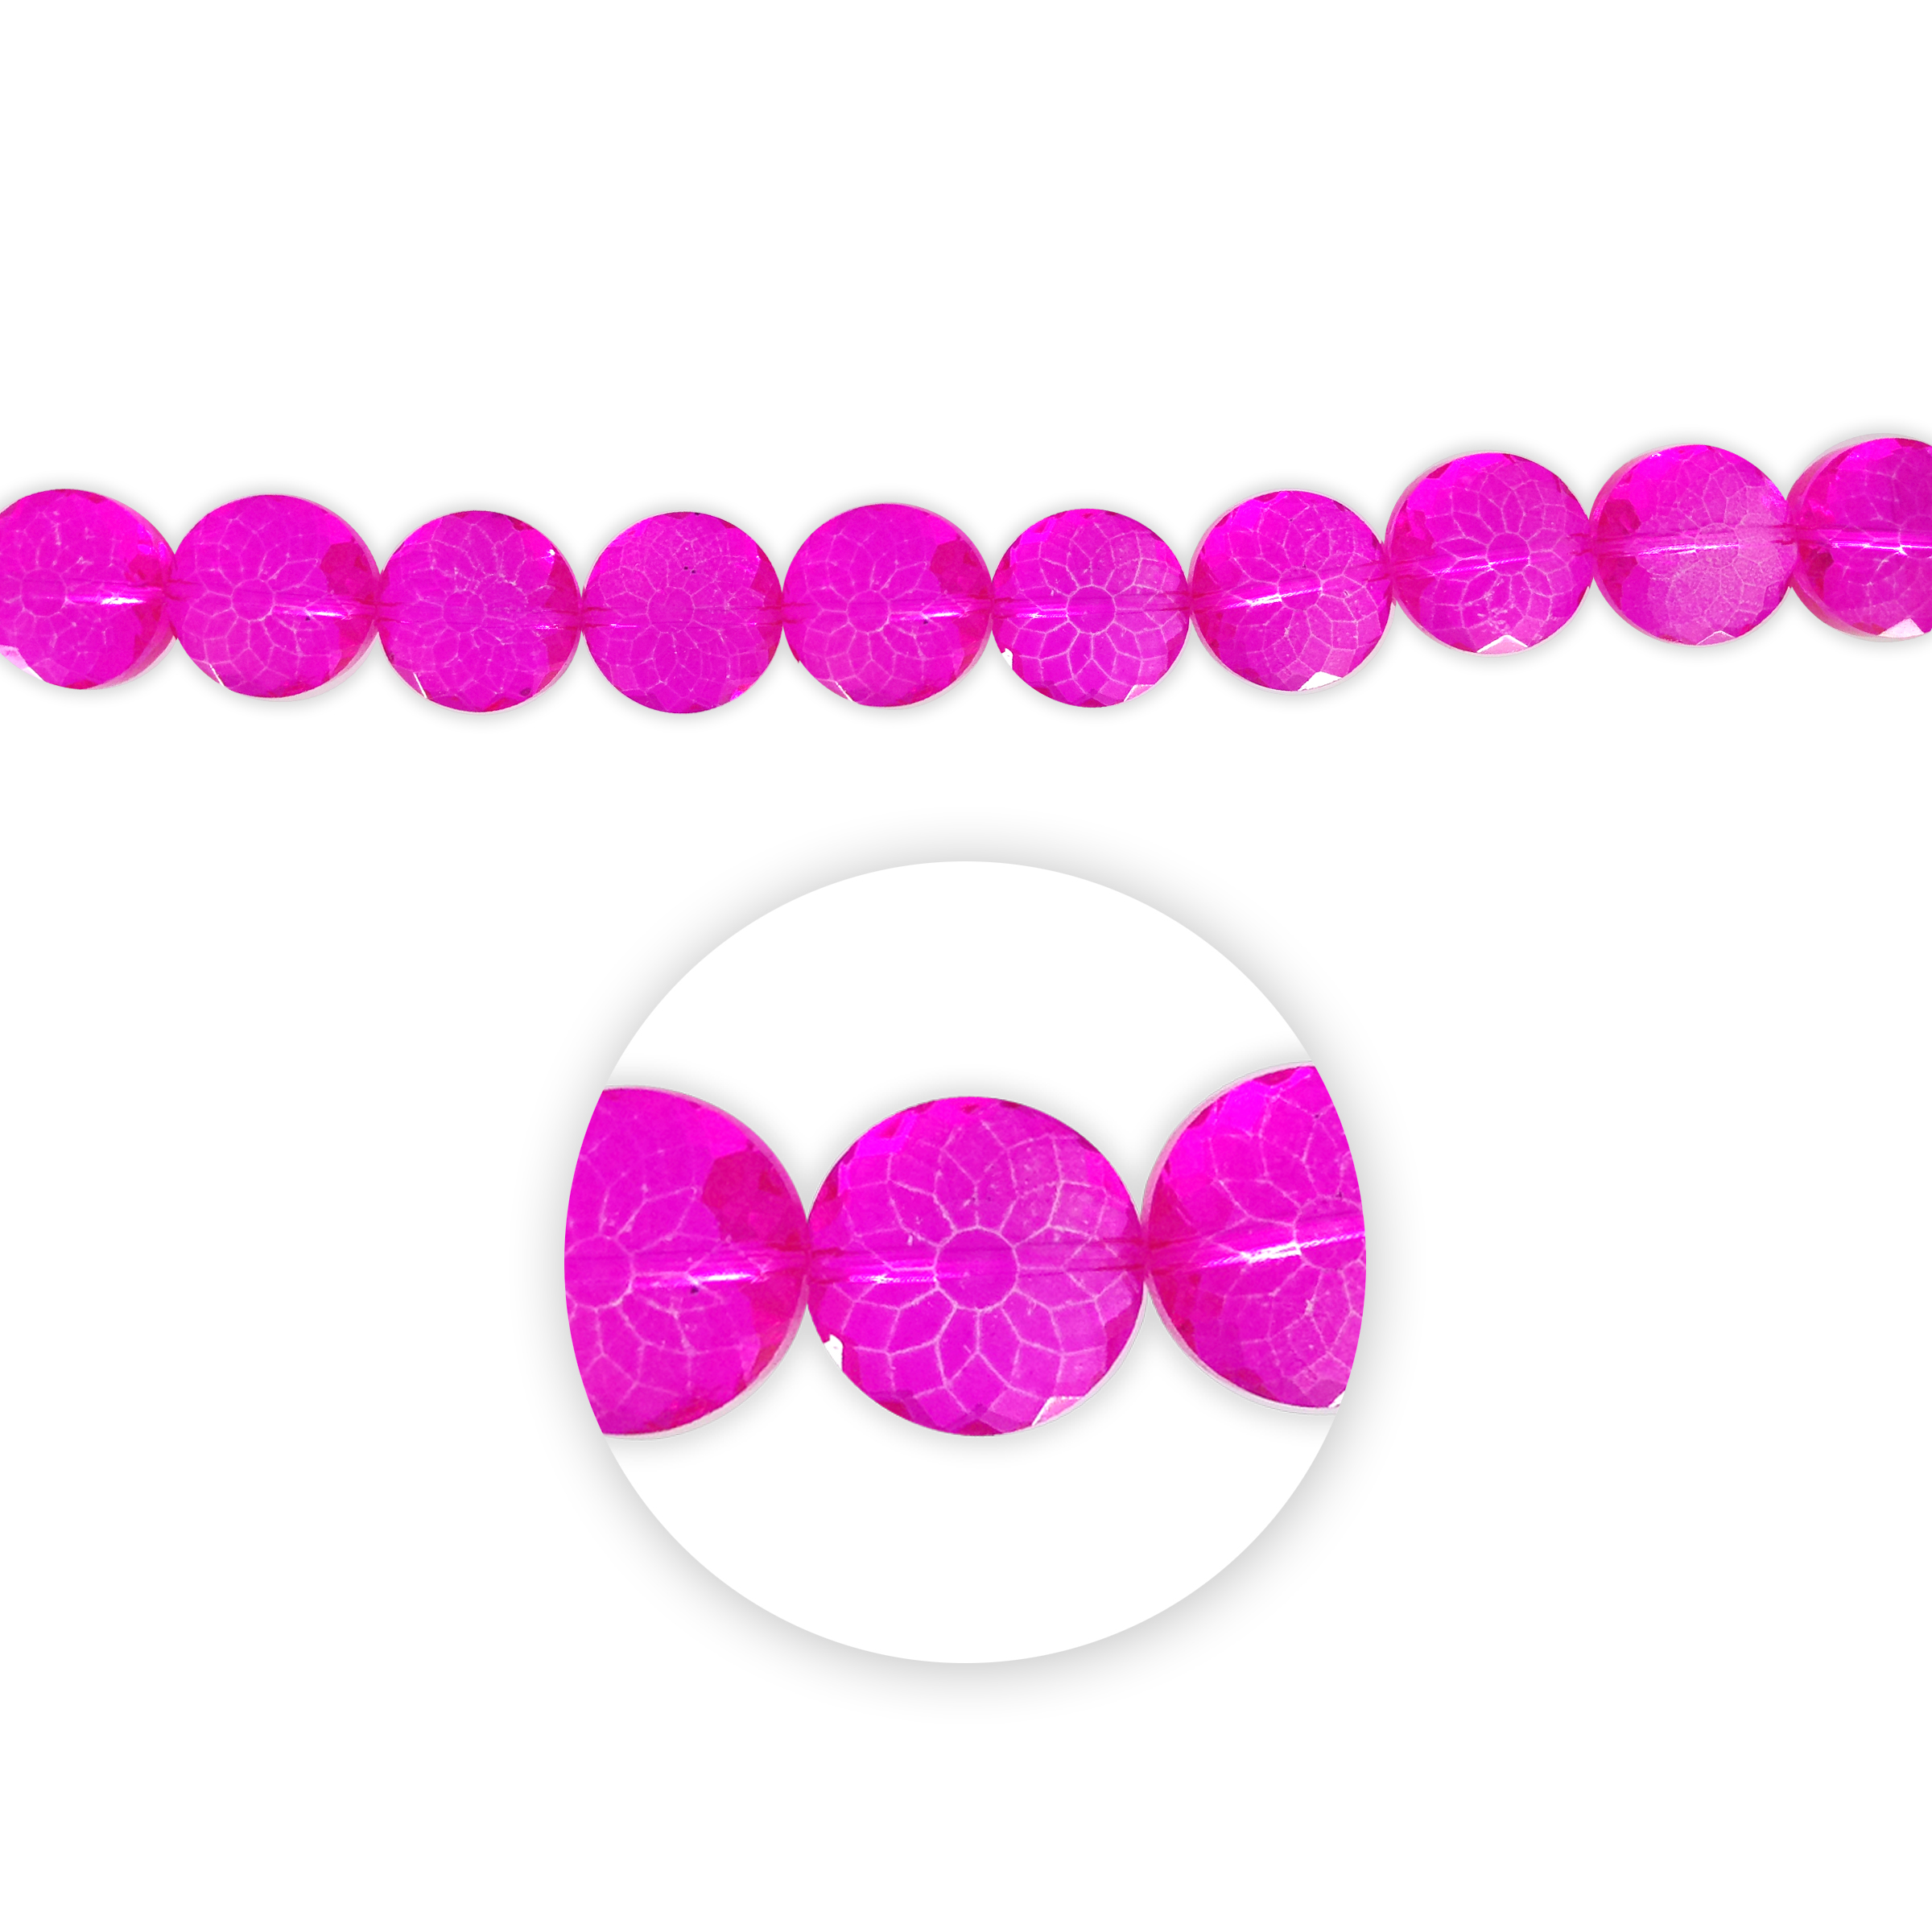 Blue Moon Beads 7\u0022 Crystal Strand, Coin-Shaped, flower facets, Fuchsia